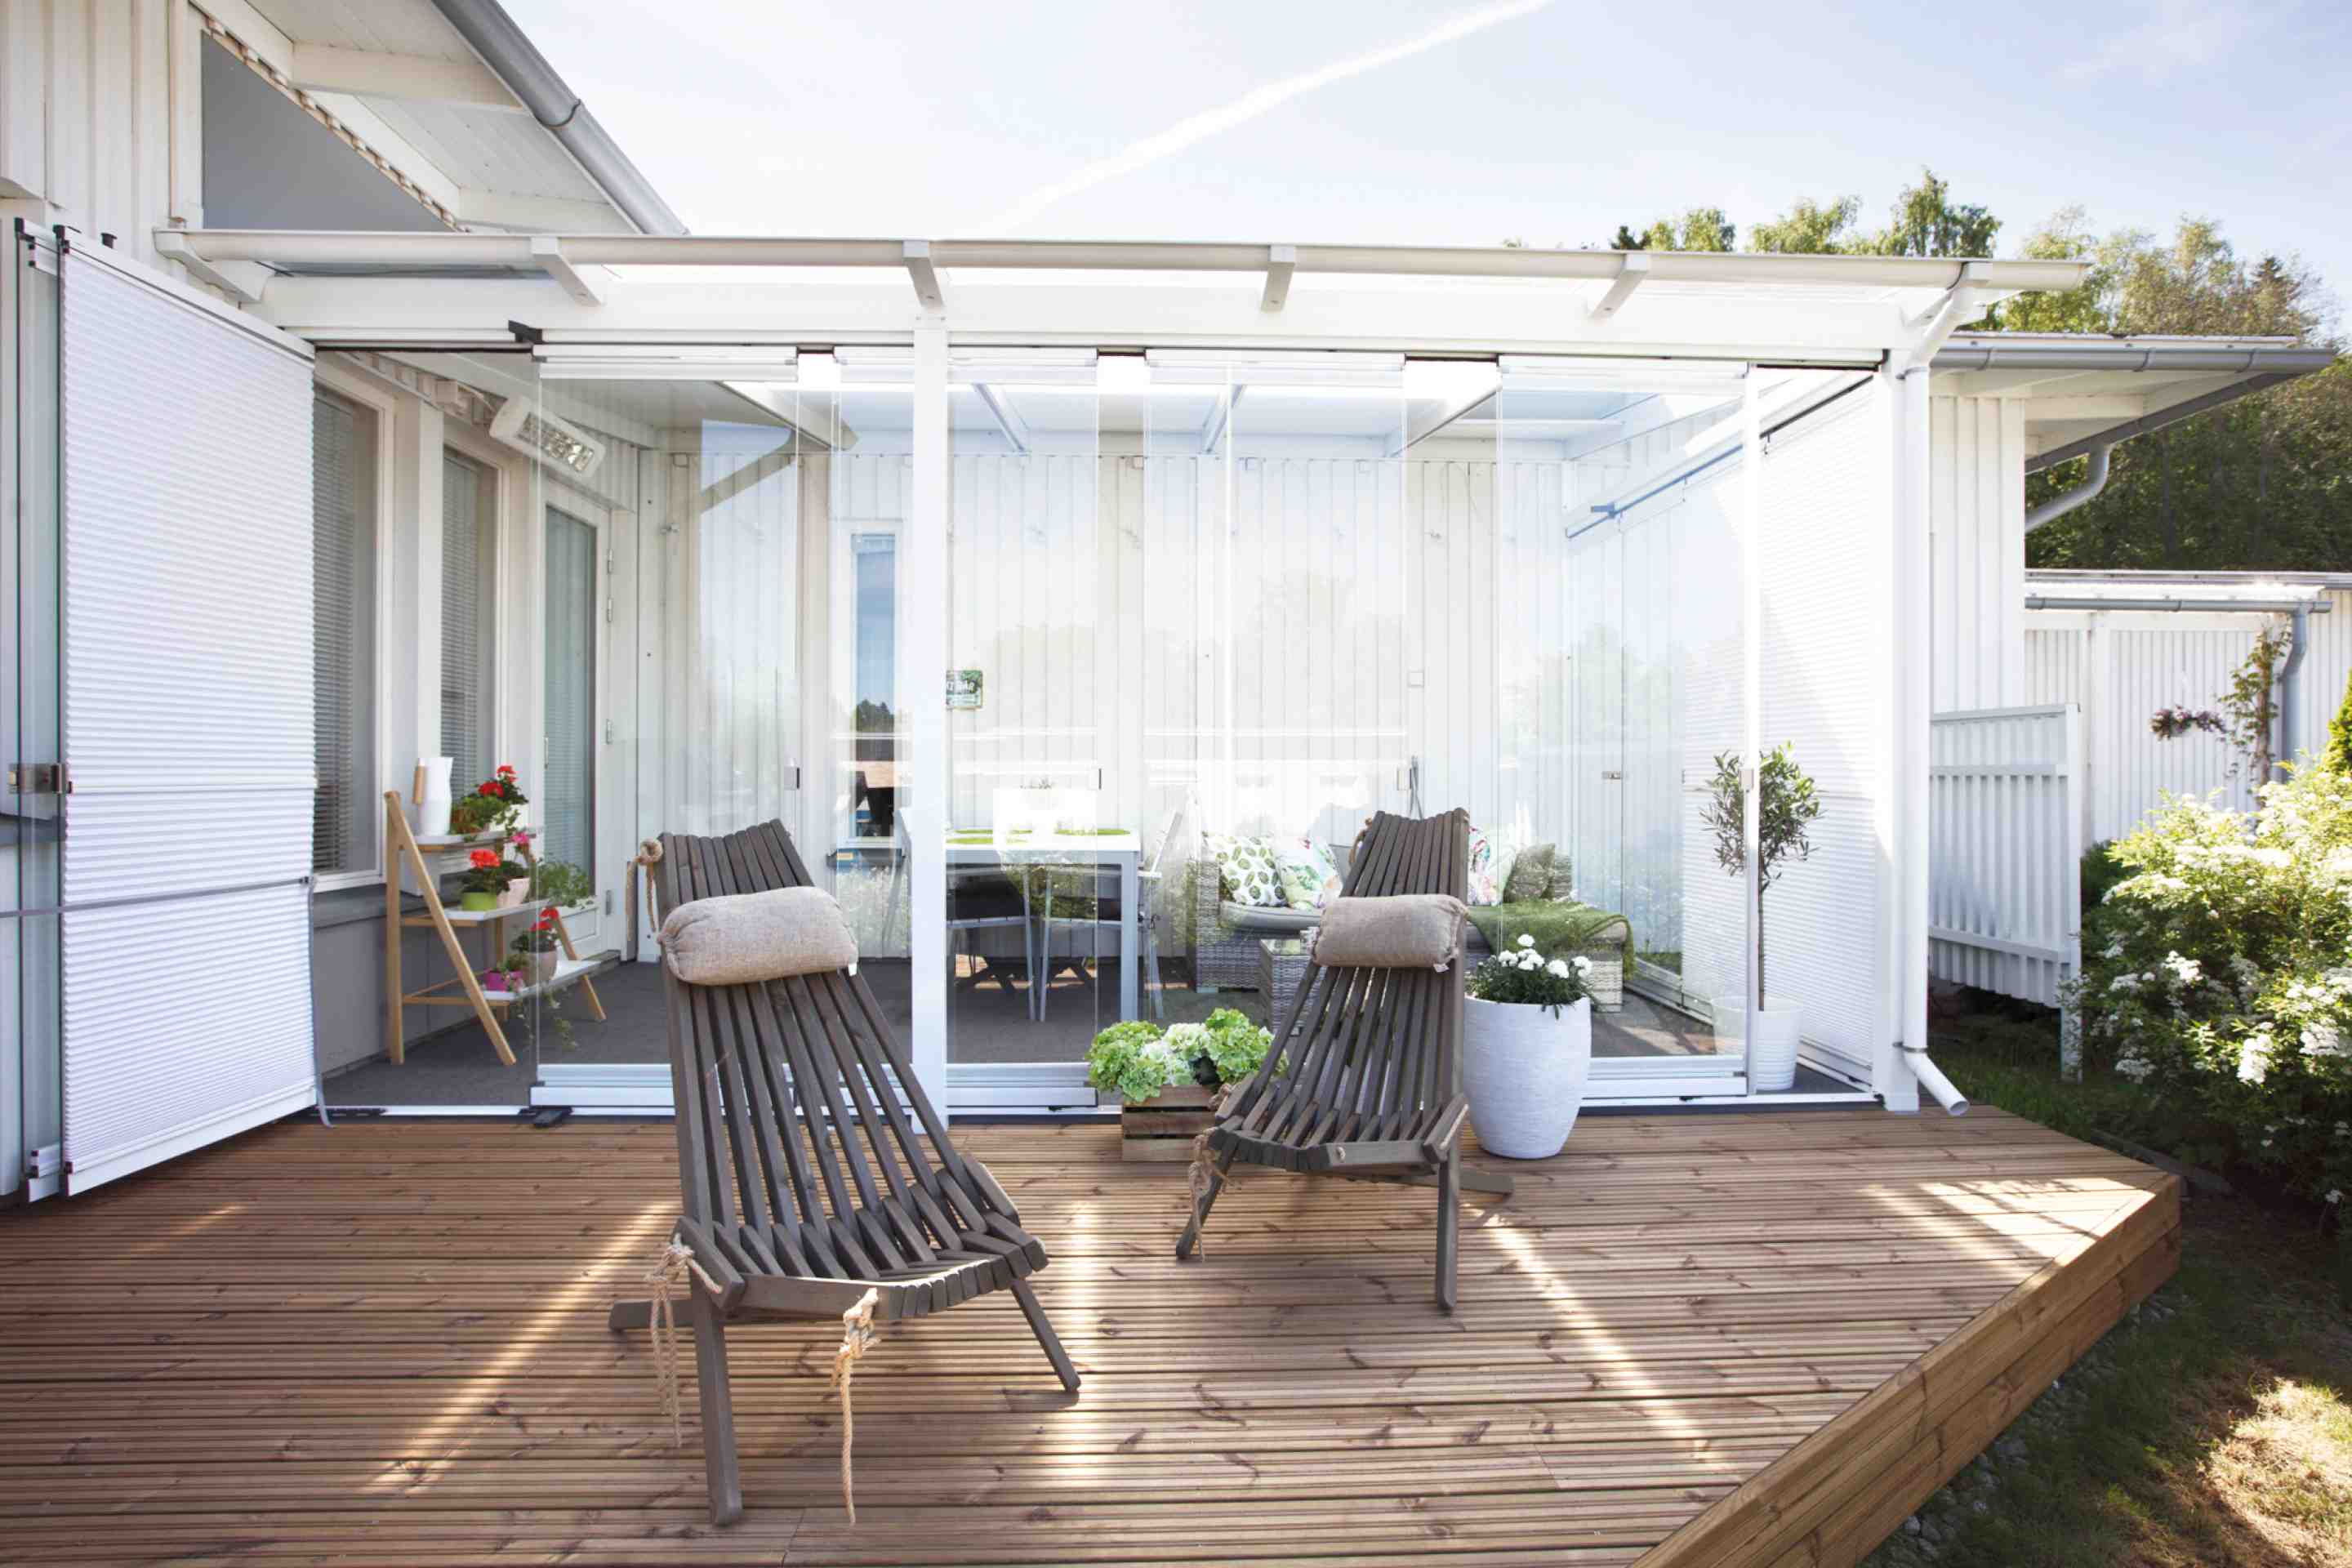 sunrooms, sunrooms in canada, sunrooms in toronto, sunrooms in hamilton, sunrooms in vancouver, lumon canada, retractable glass sunrooms, patio covers, patio enclosures,